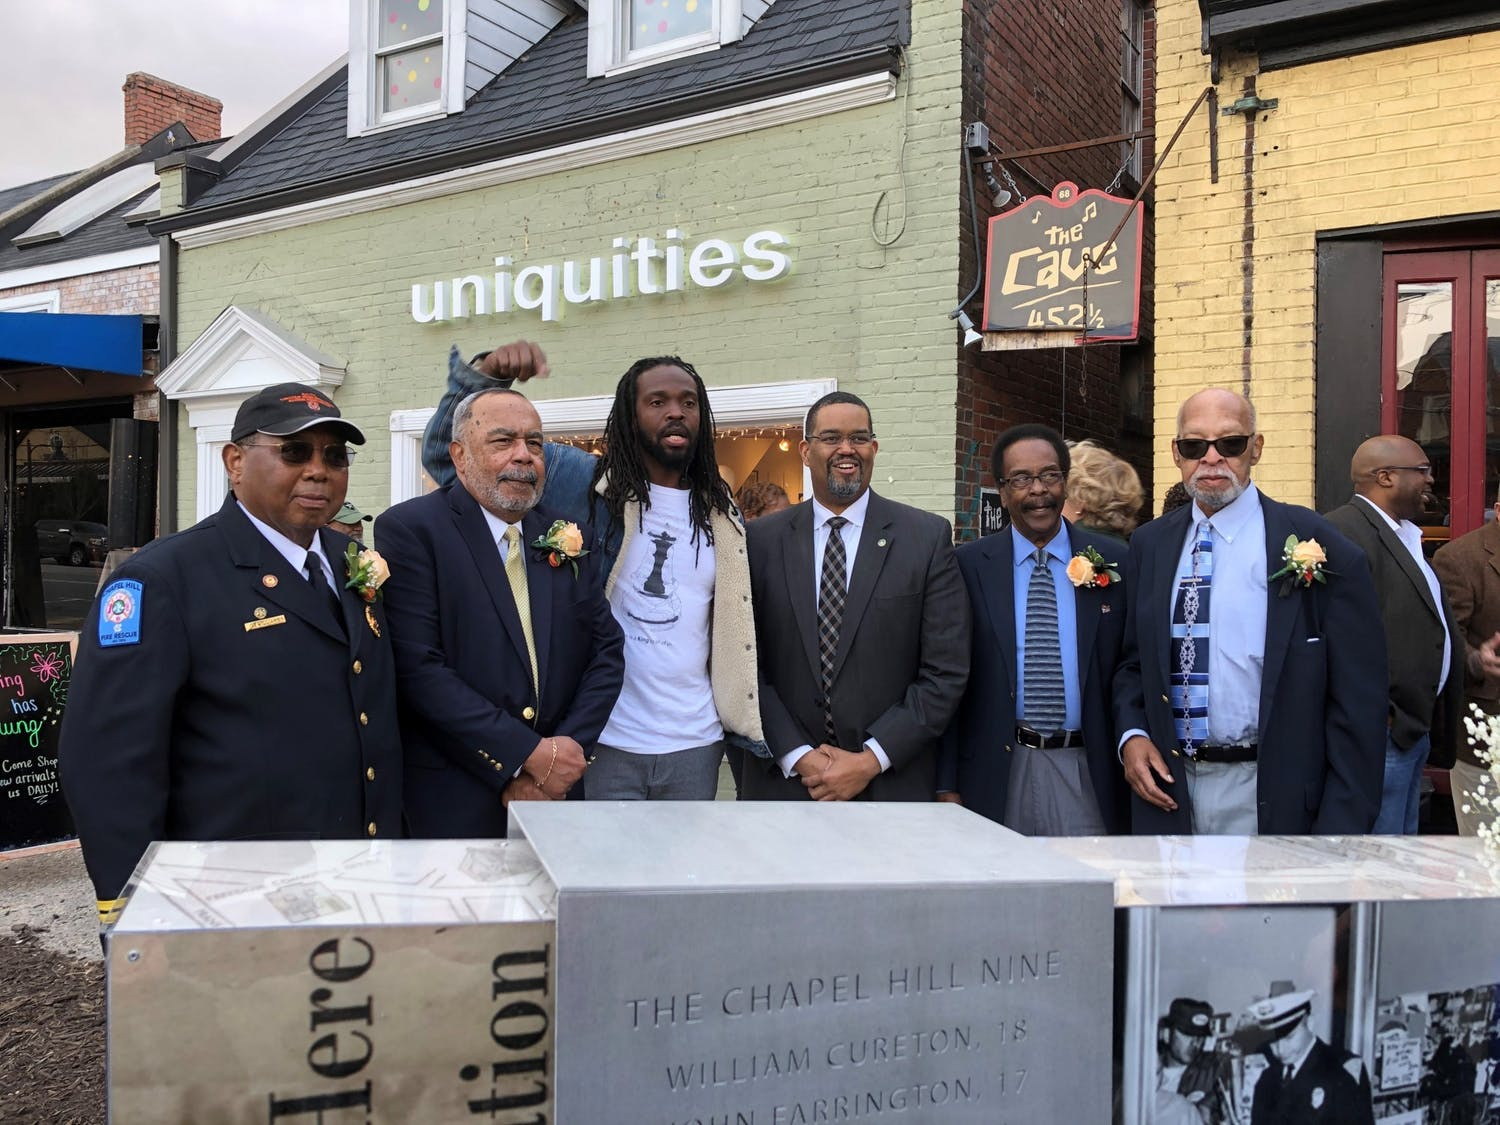 (From left) Surviving Chapel Hill Nine members Albert Williams and James Merritt, marker artist Steven Hayes, Chapel Hill Town Manager Maurice Jones, and two other Chapel Hill Nine members Dave Mason Jr. and 'Clyde' Douglas Perry stand behind the new marker on Franklin Street. The marker was dedicated on Friday, Feb. 28, 2020.